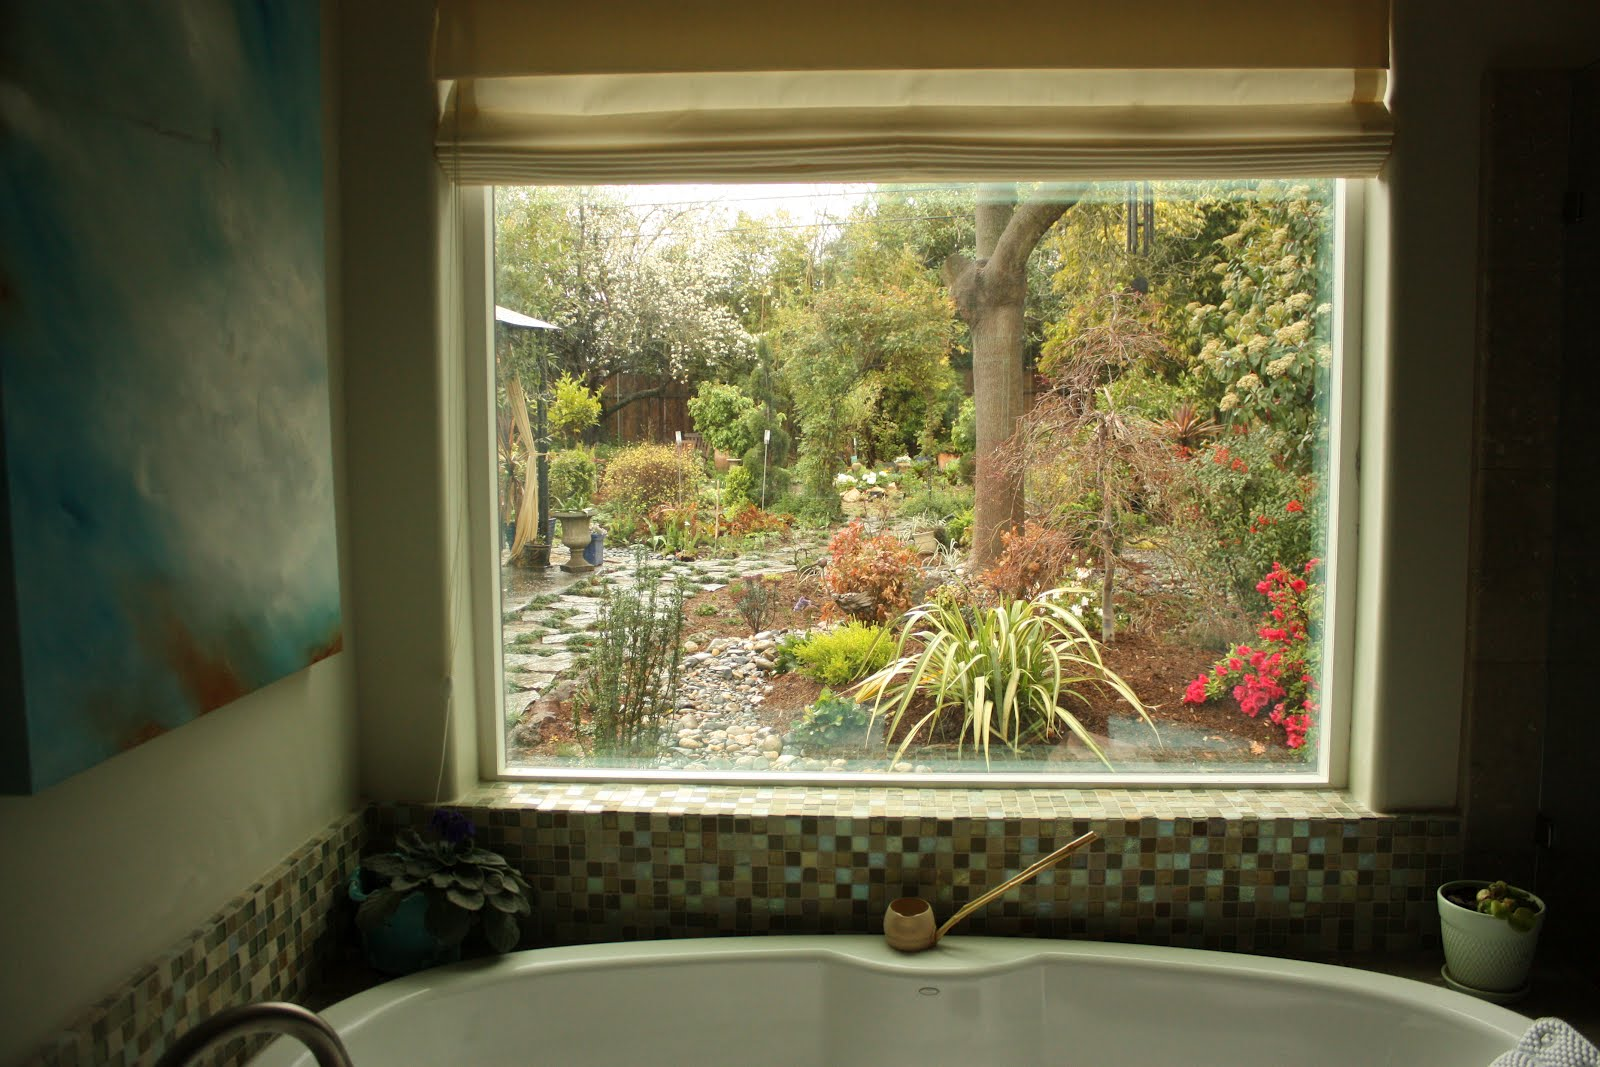 Room With A View Garden Design Part - 45: A Room With A View